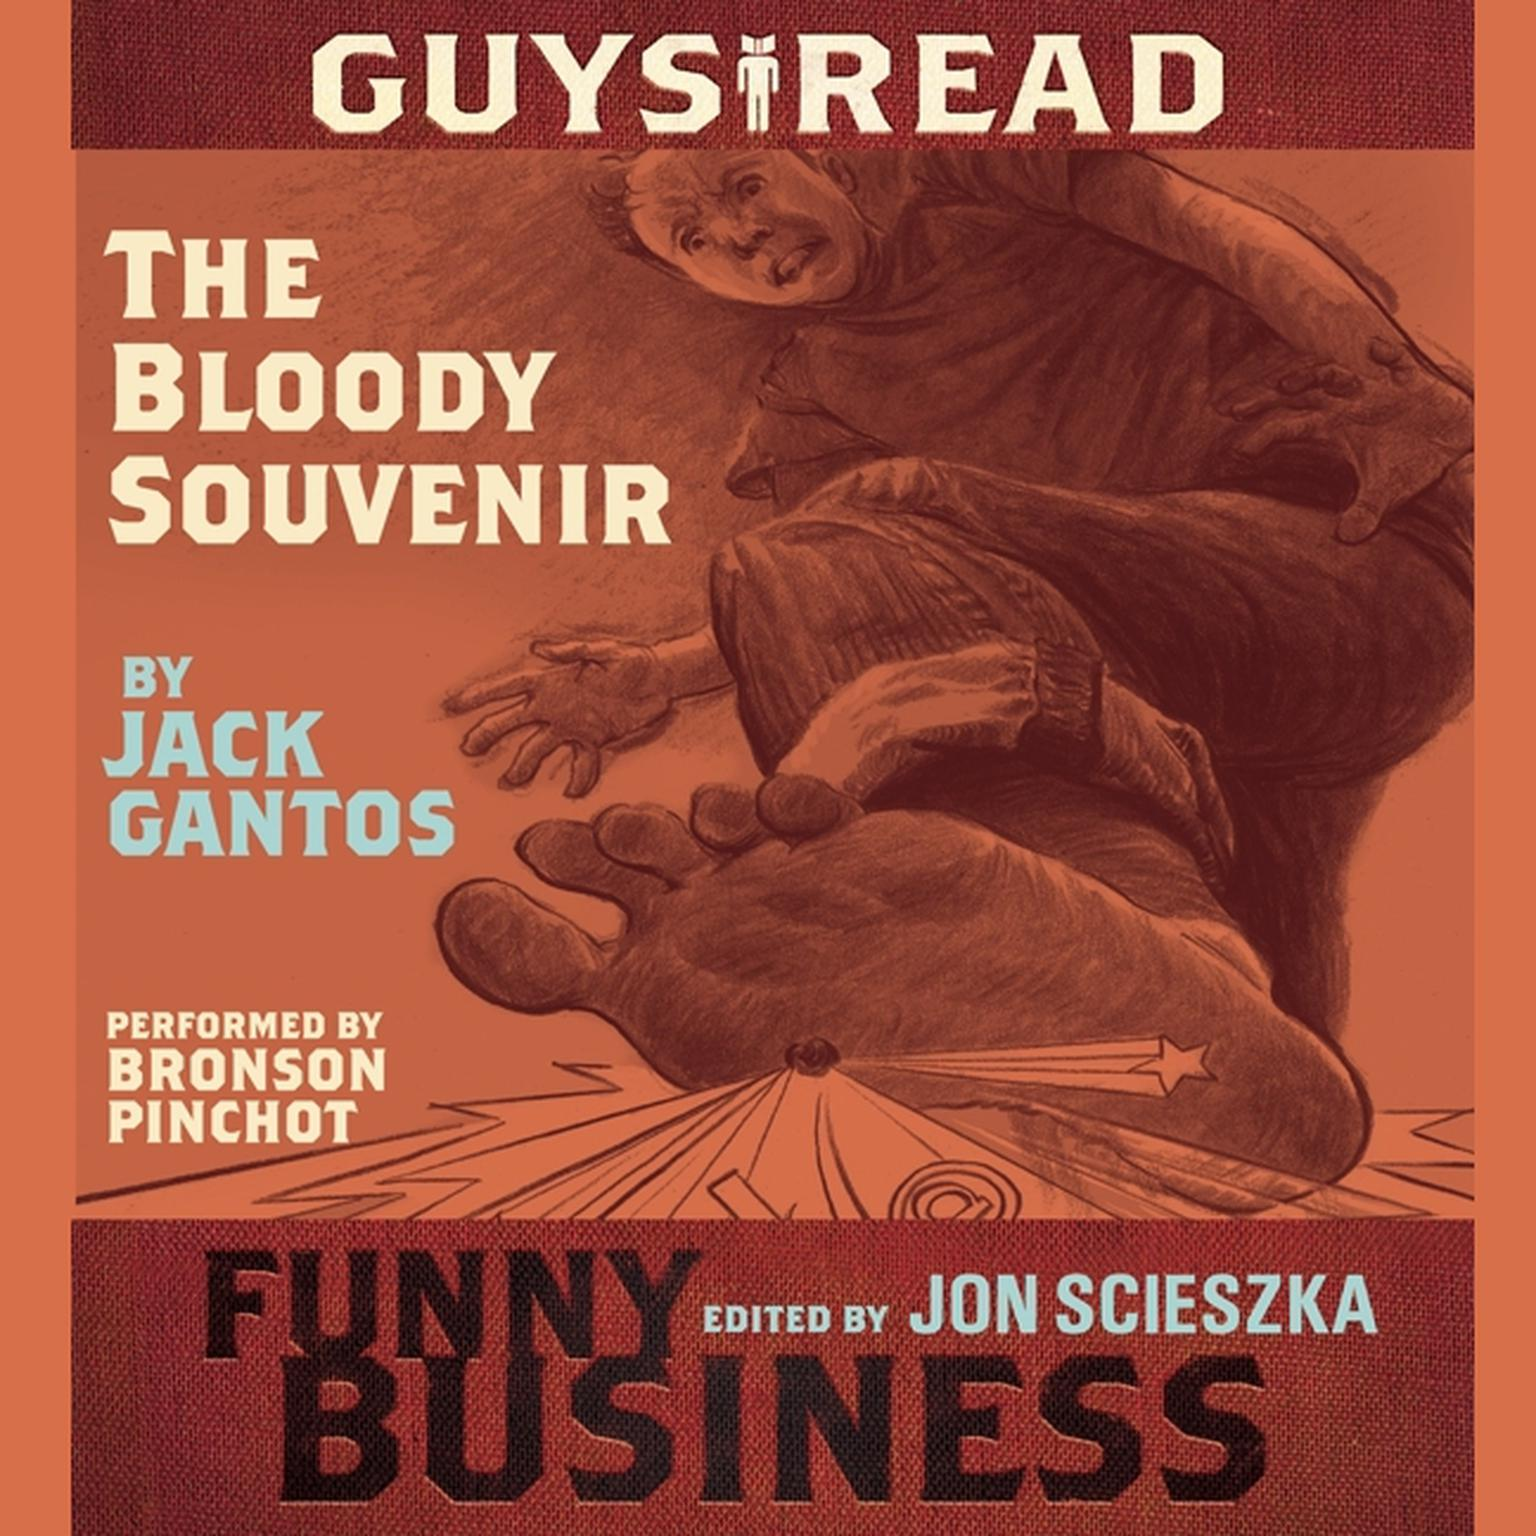 Printable The Bloody Souvenir: A Story from Guys Read: Funny Business Audiobook Cover Art